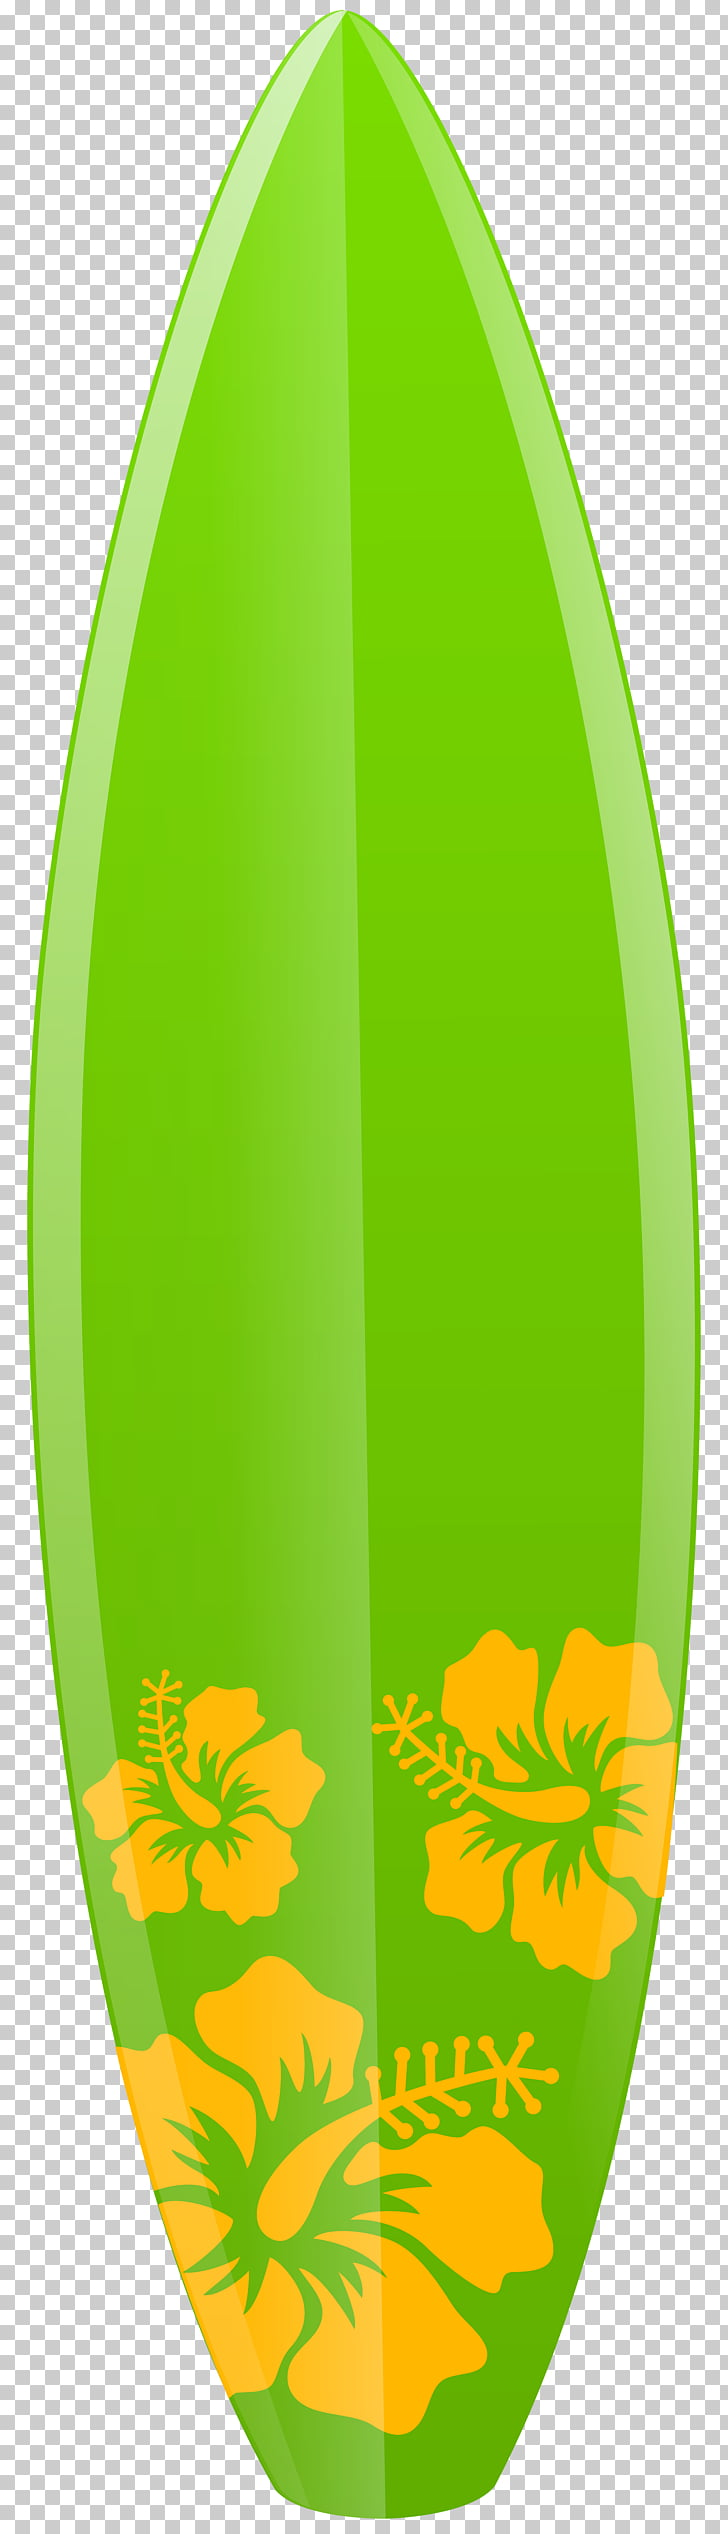 Surfboard Surfing , surfboard PNG clipart.